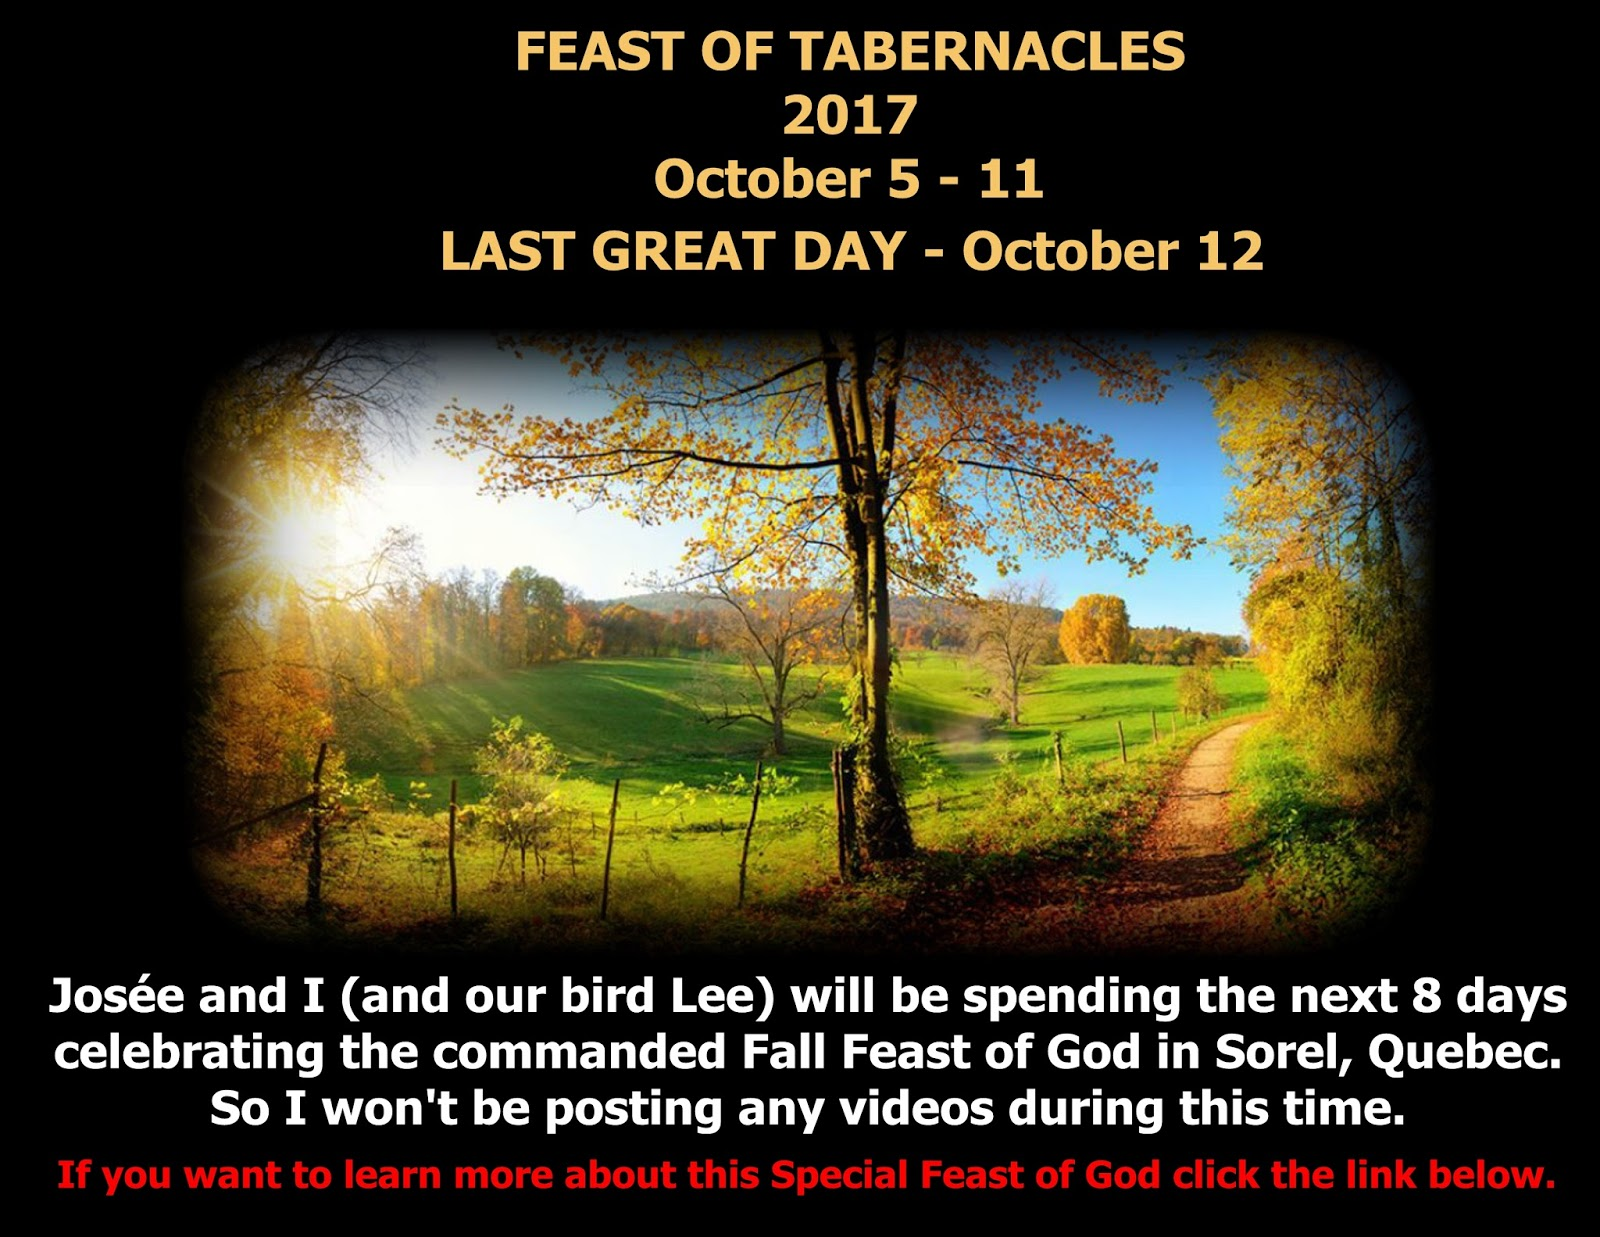 Feast of Tabernacles 2017 ( October 5 - 11) + The Last Great